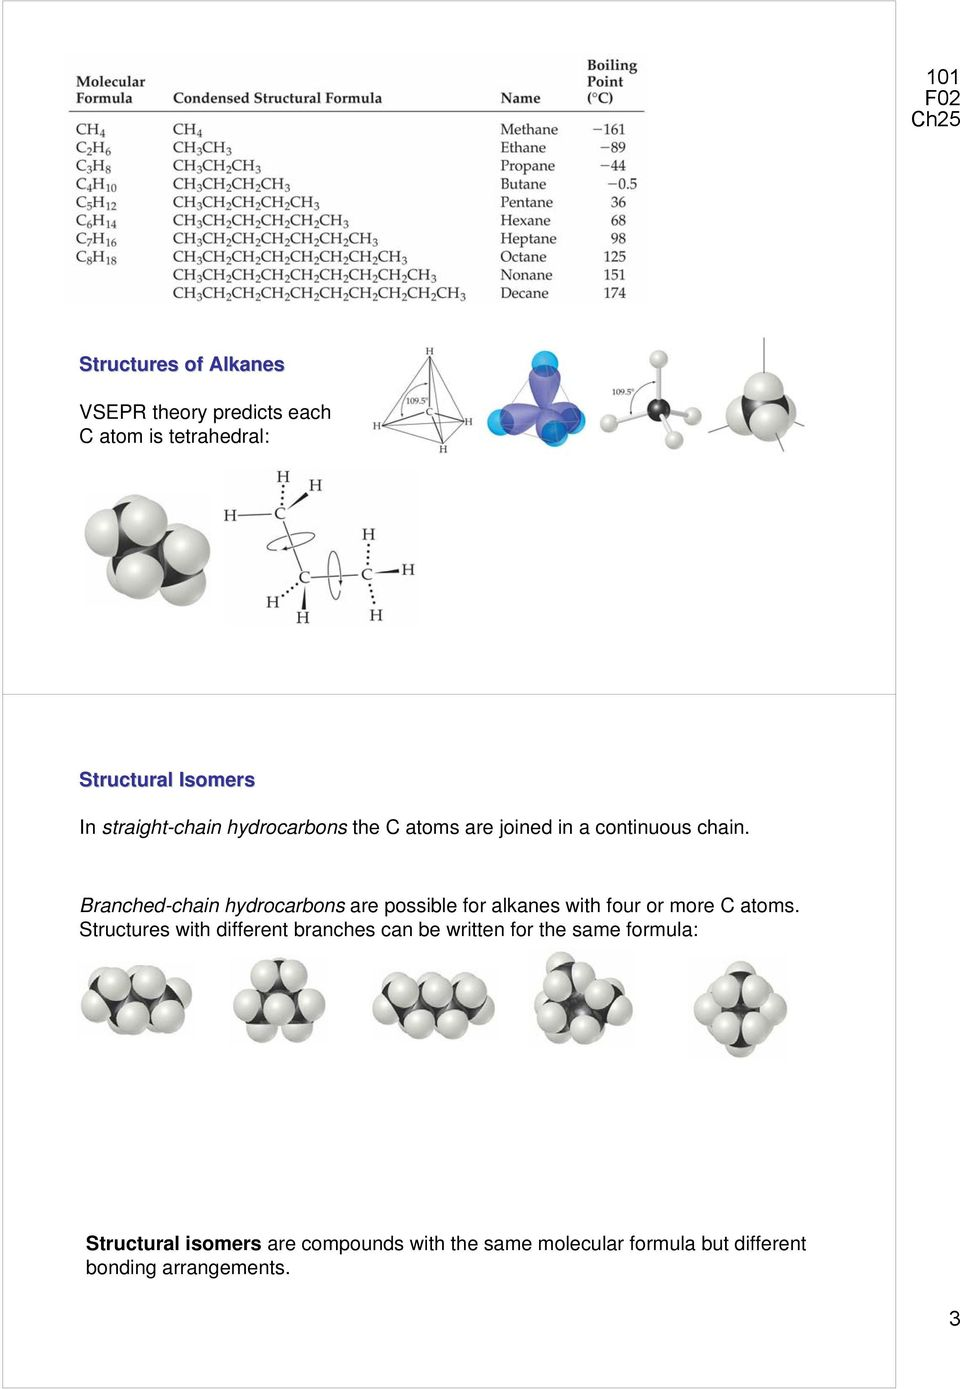 Branched-chain hydrocarbons are possible for alkanes with four or more C atoms.